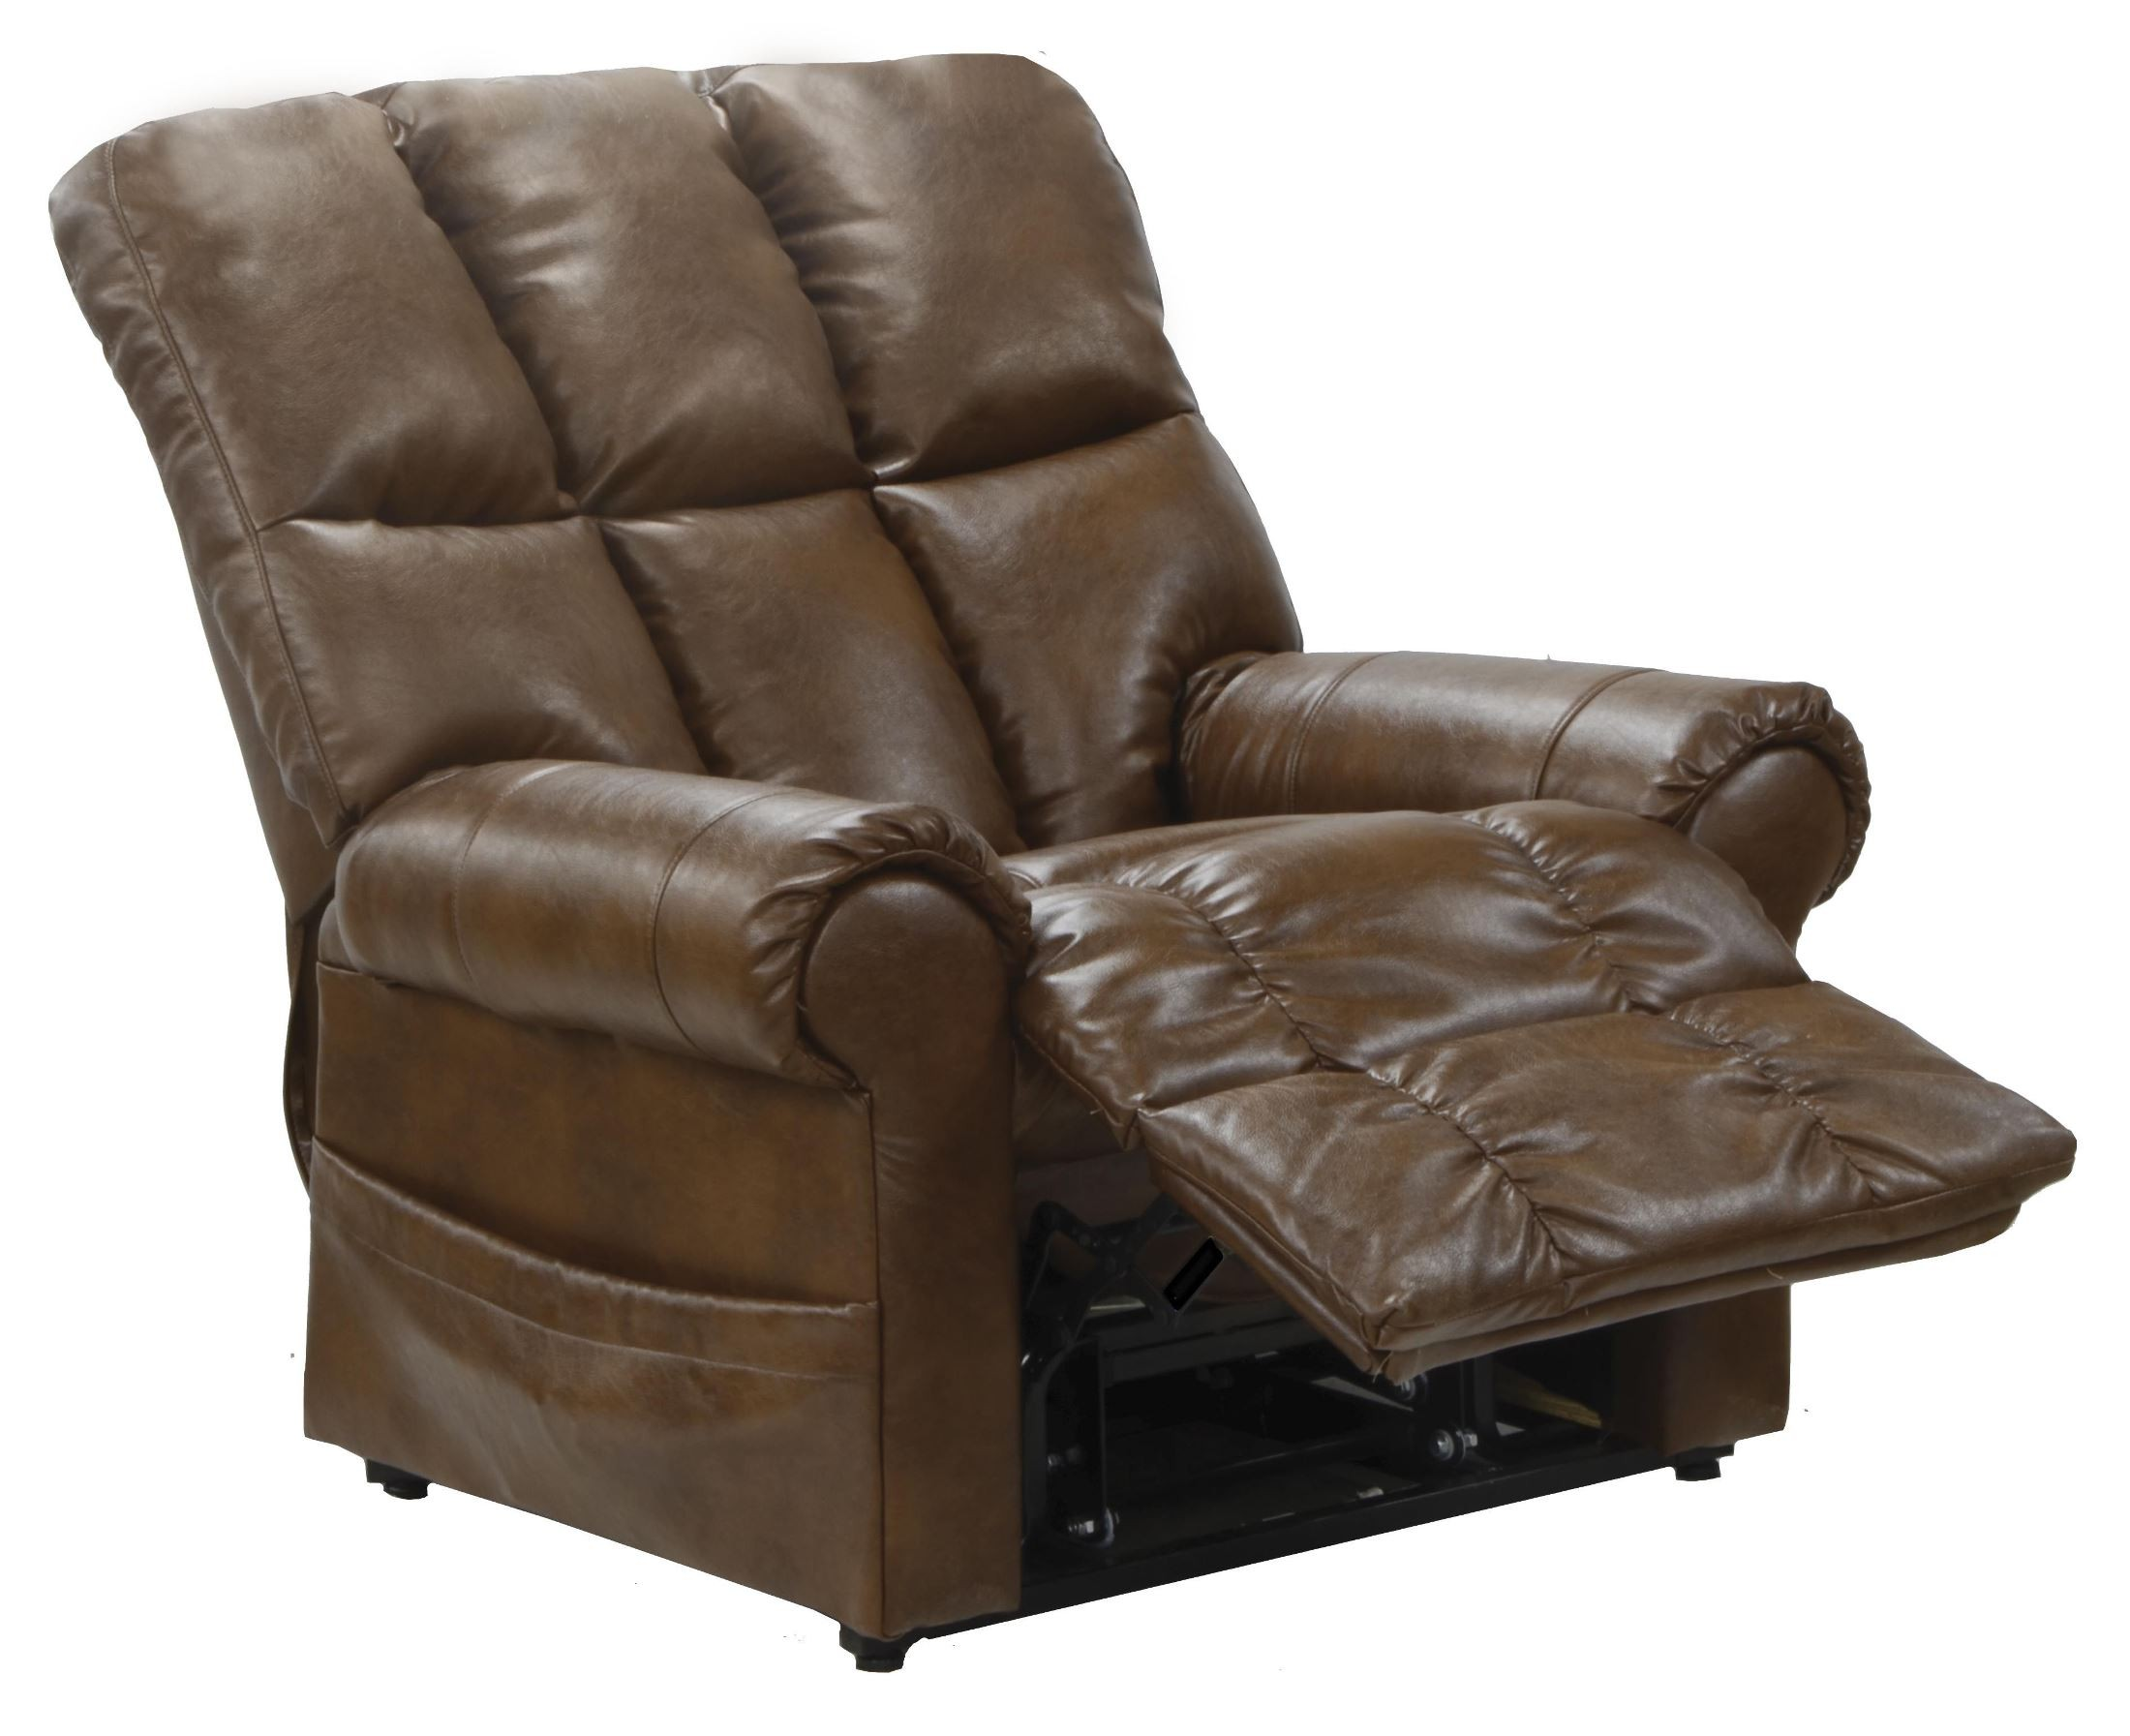 power lift chair desk chairs for teens stallworth chestnut bonded leather recliner